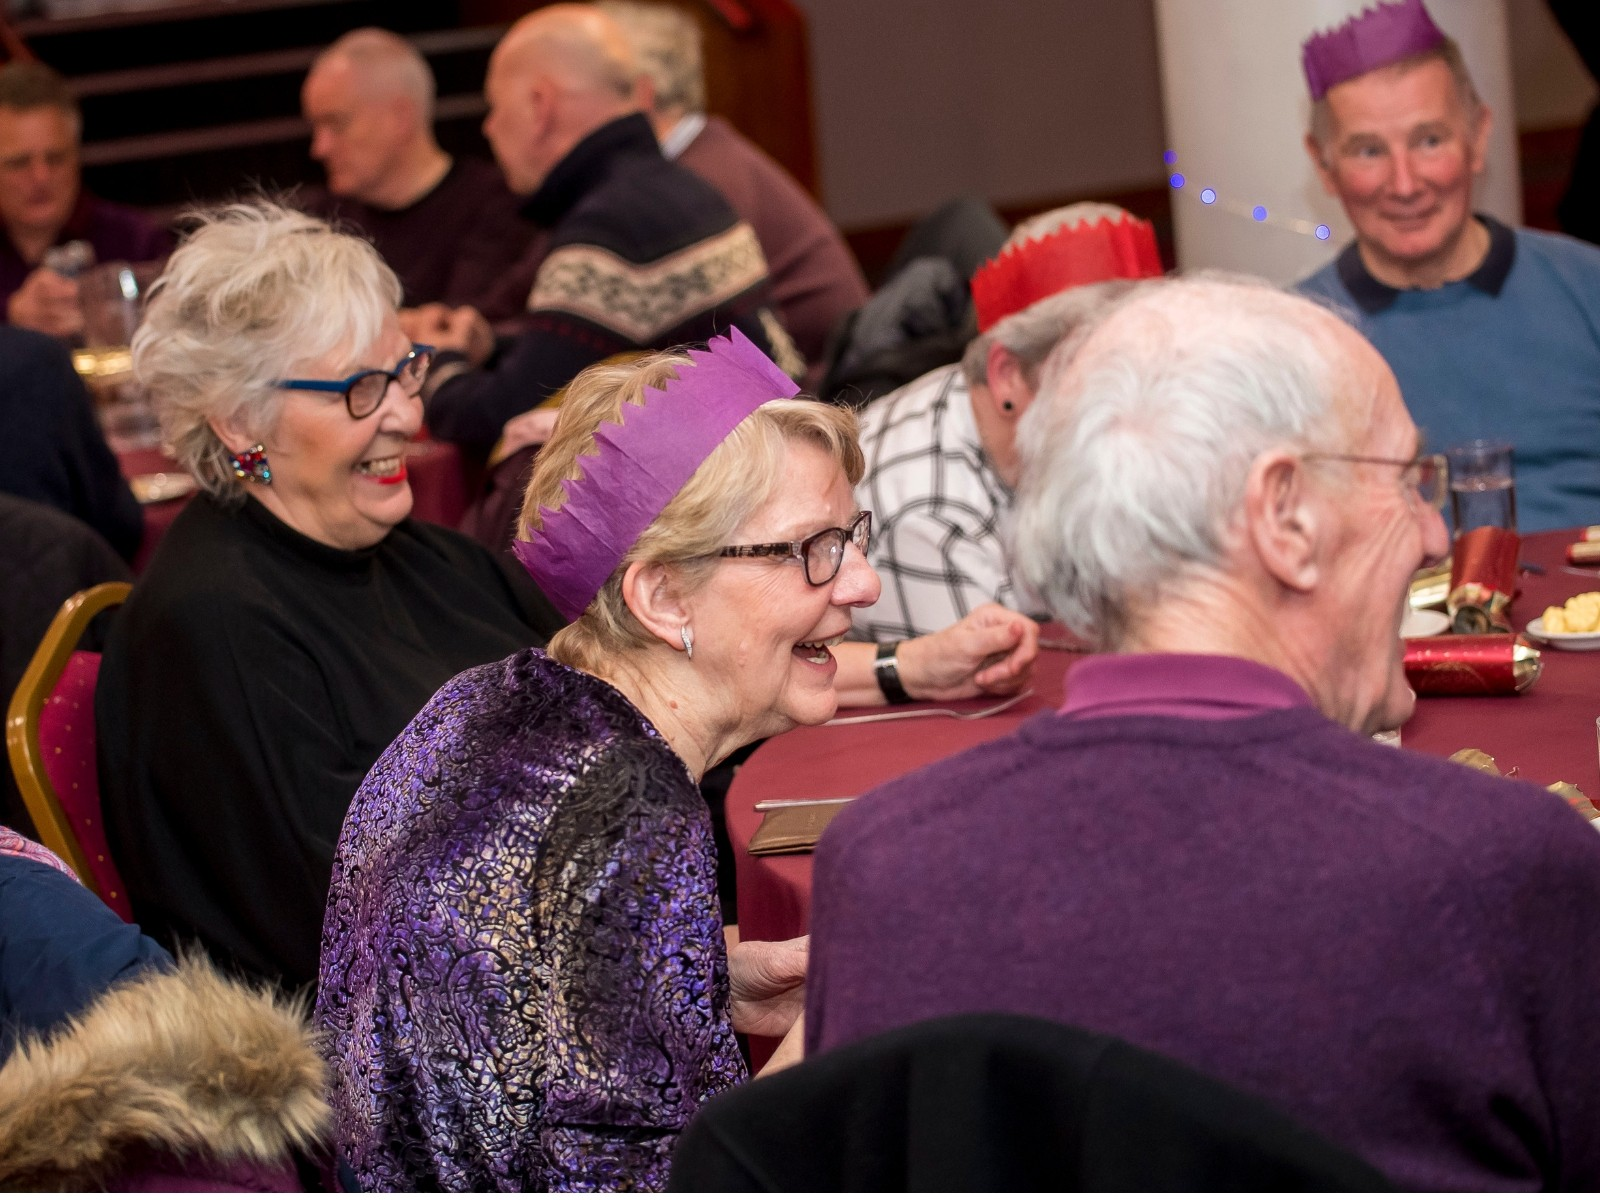 » Football memories spreading festive cheer at Tynecastle!